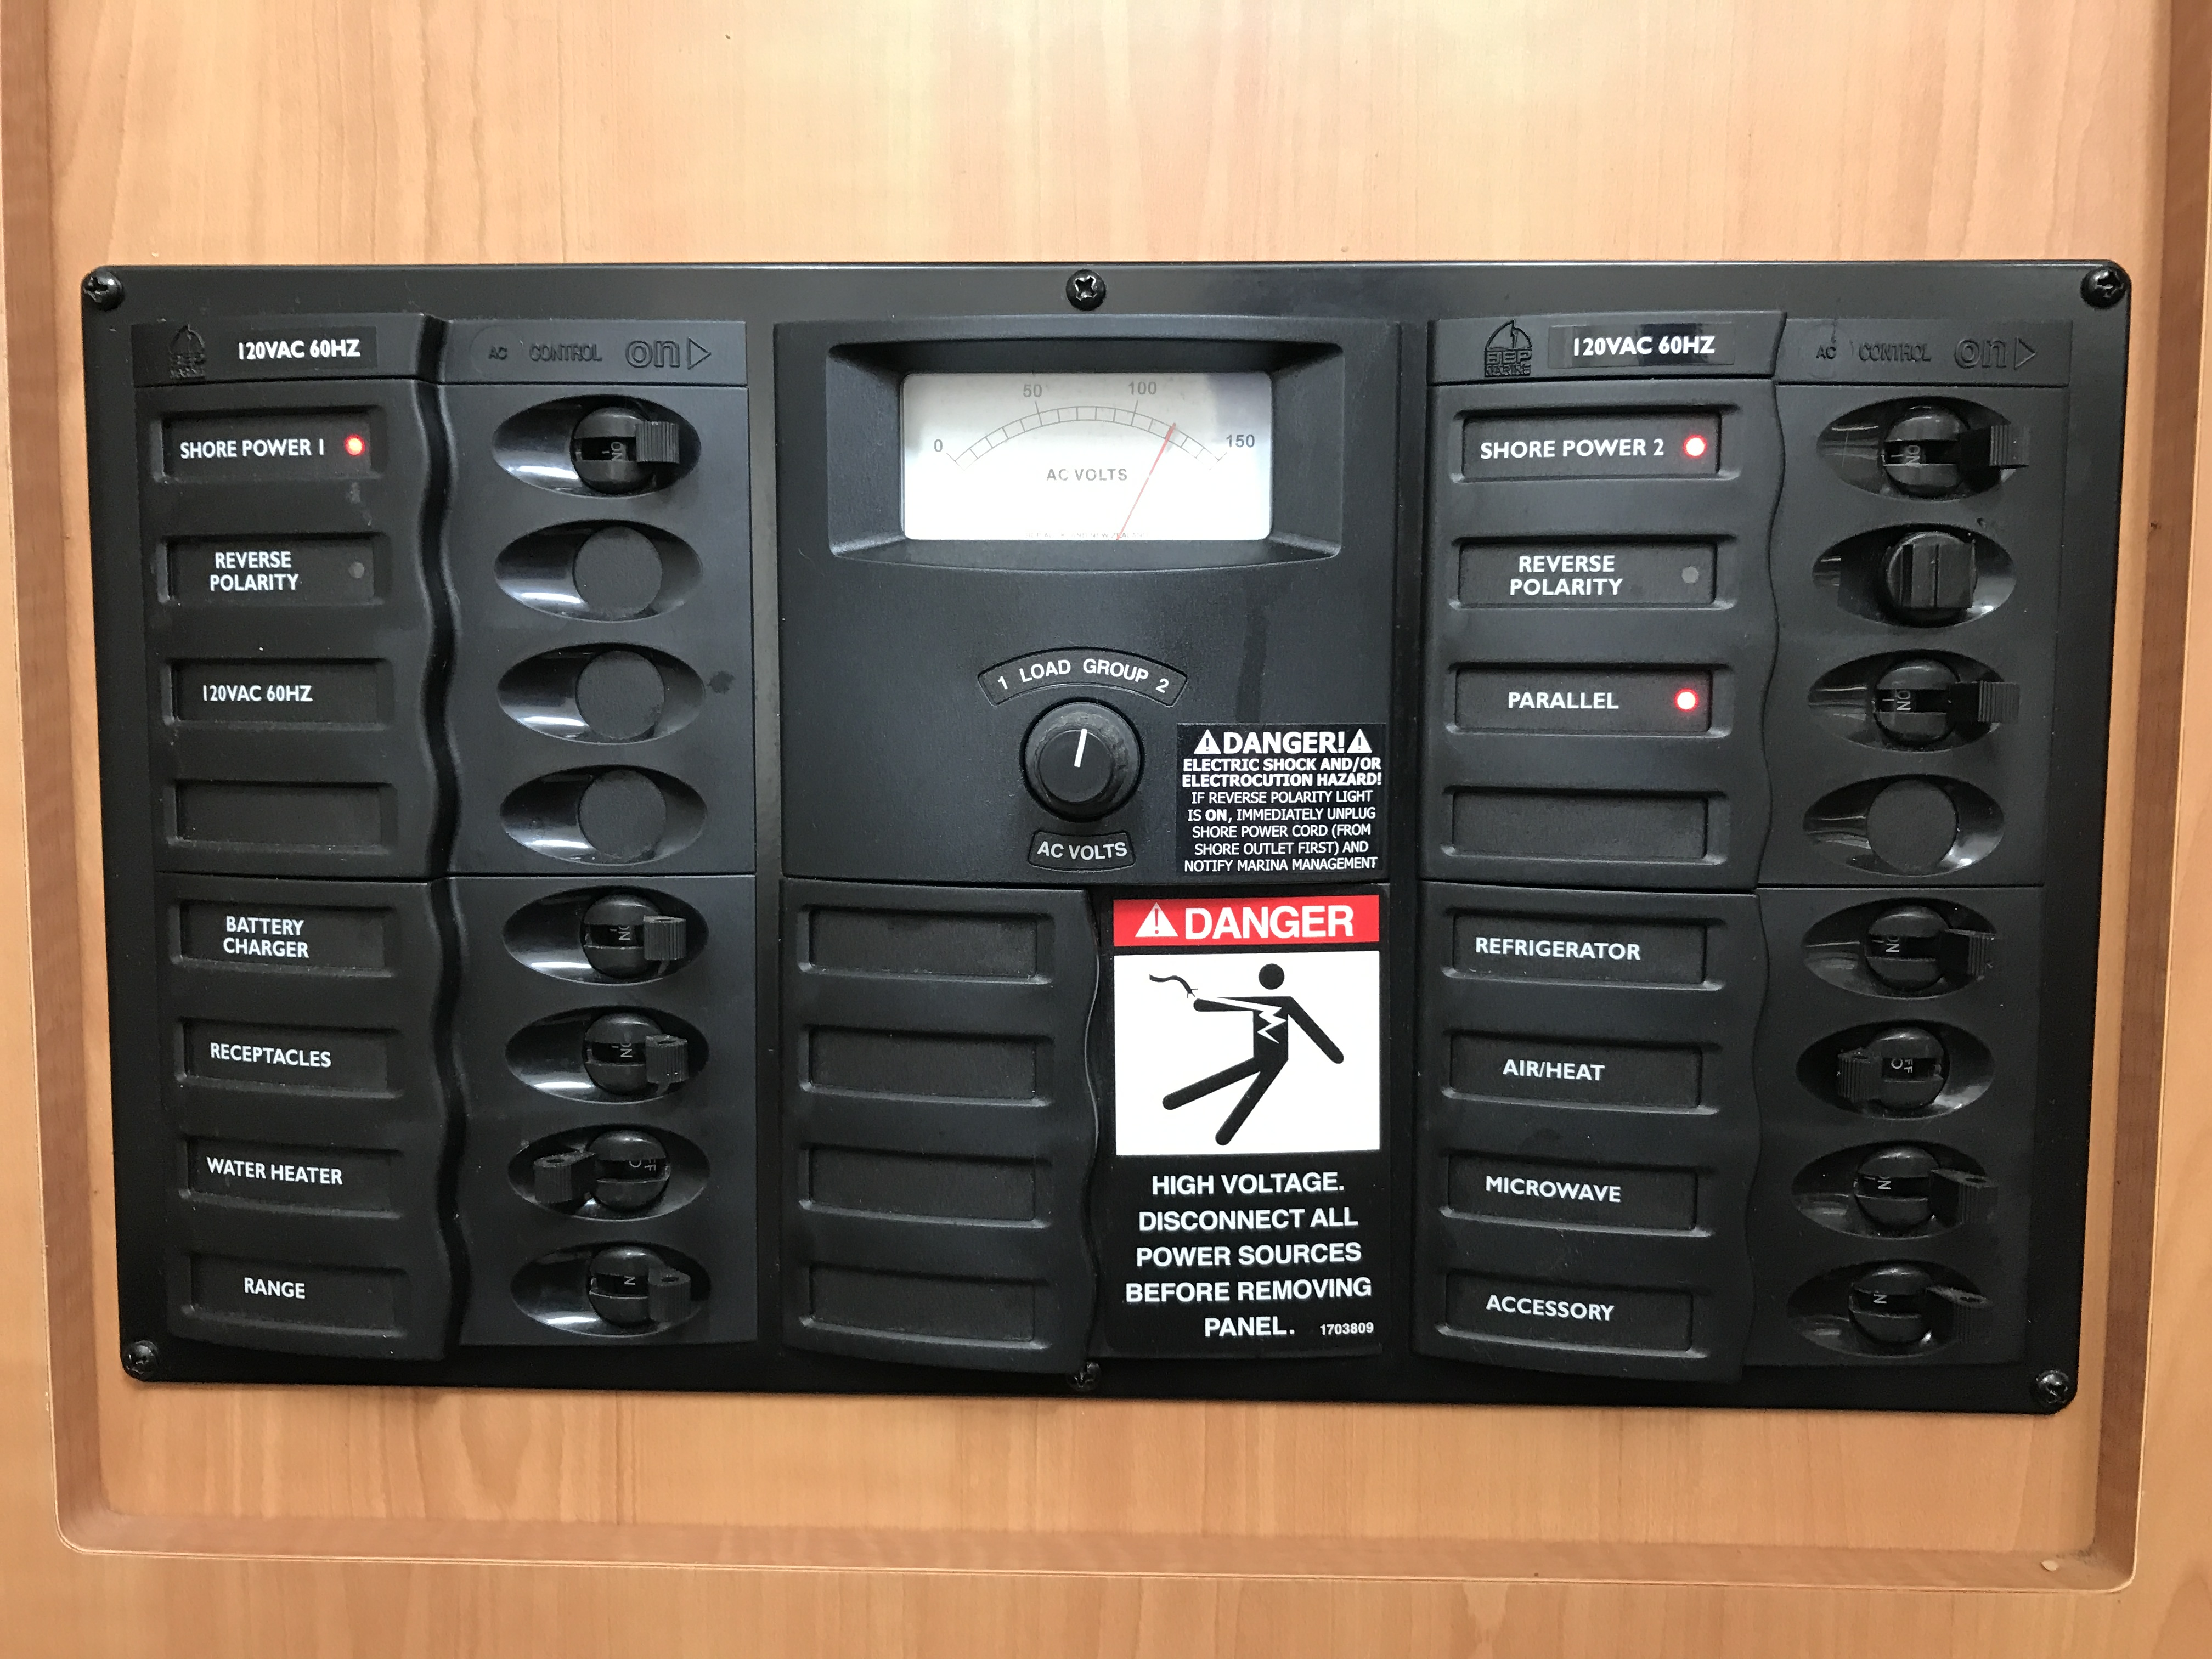 Bayliner Discovery 246 EC - electrical panel in easy reach and view